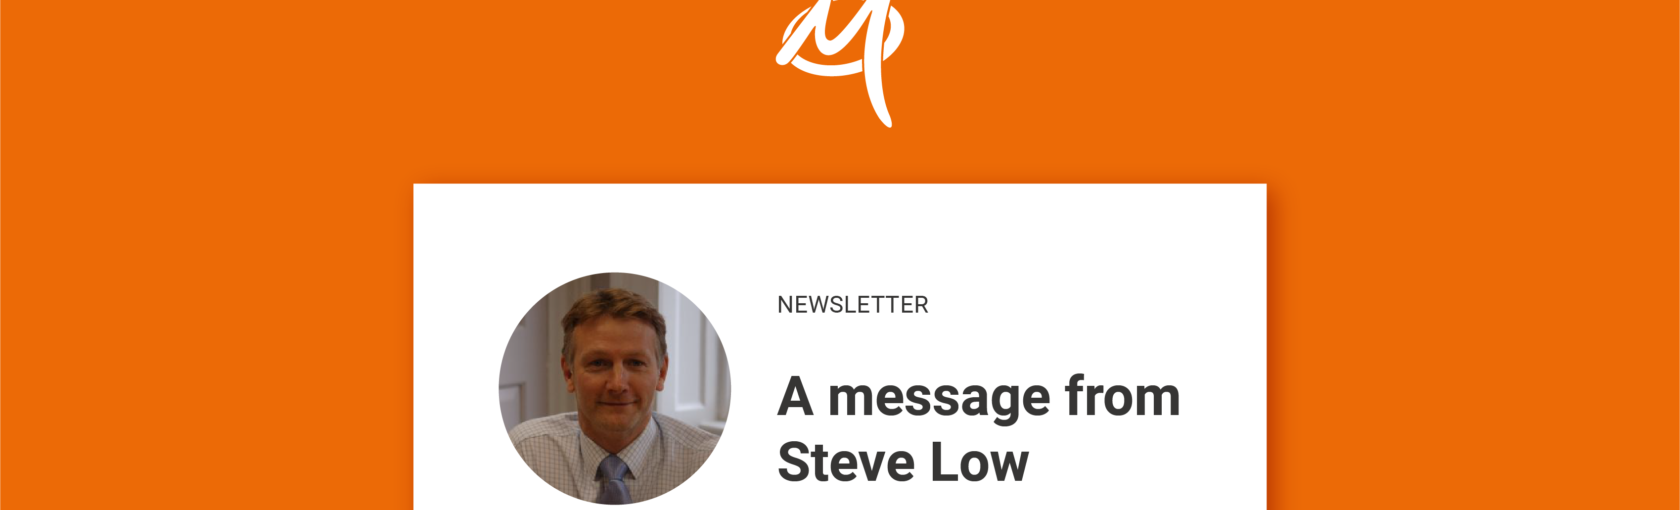 A message from Steve Low